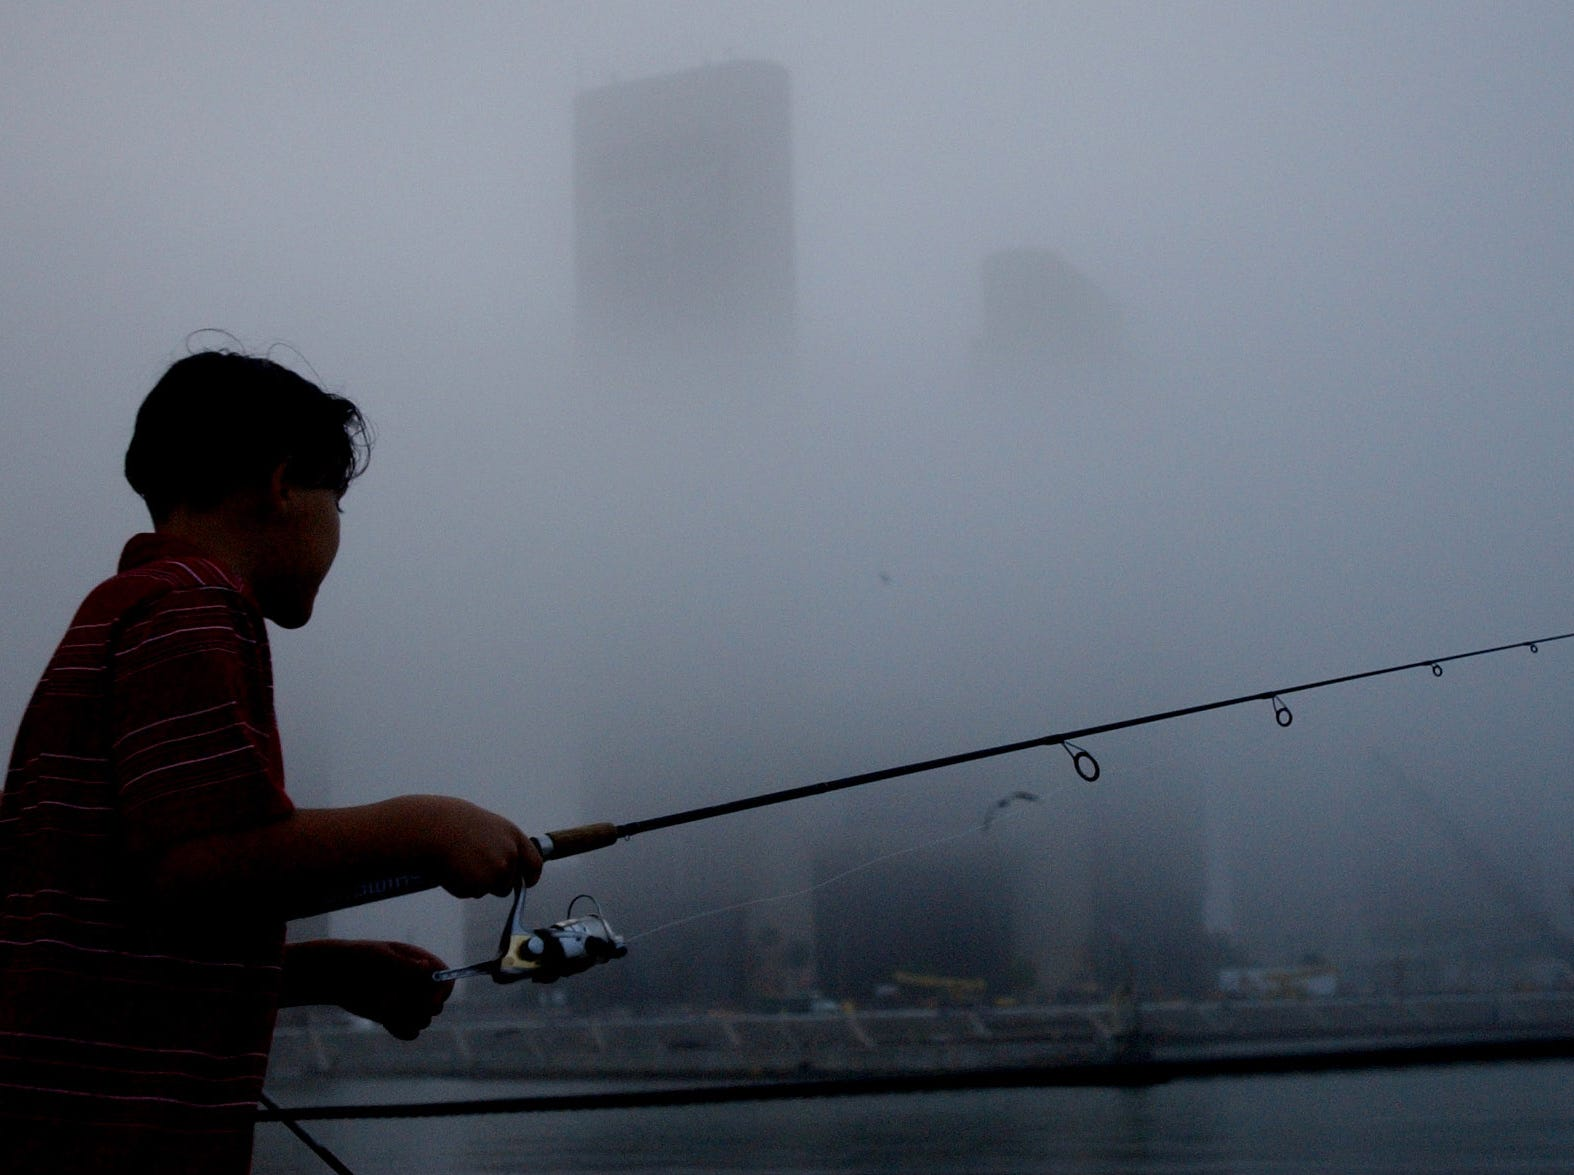 Tammie Rodela (left), 13, and her cousin Roger Garza (cq), 10, fish off the Peoples St. T-Head on a foggy afternoon in Corpus Christi on Jan. 9, 2005.